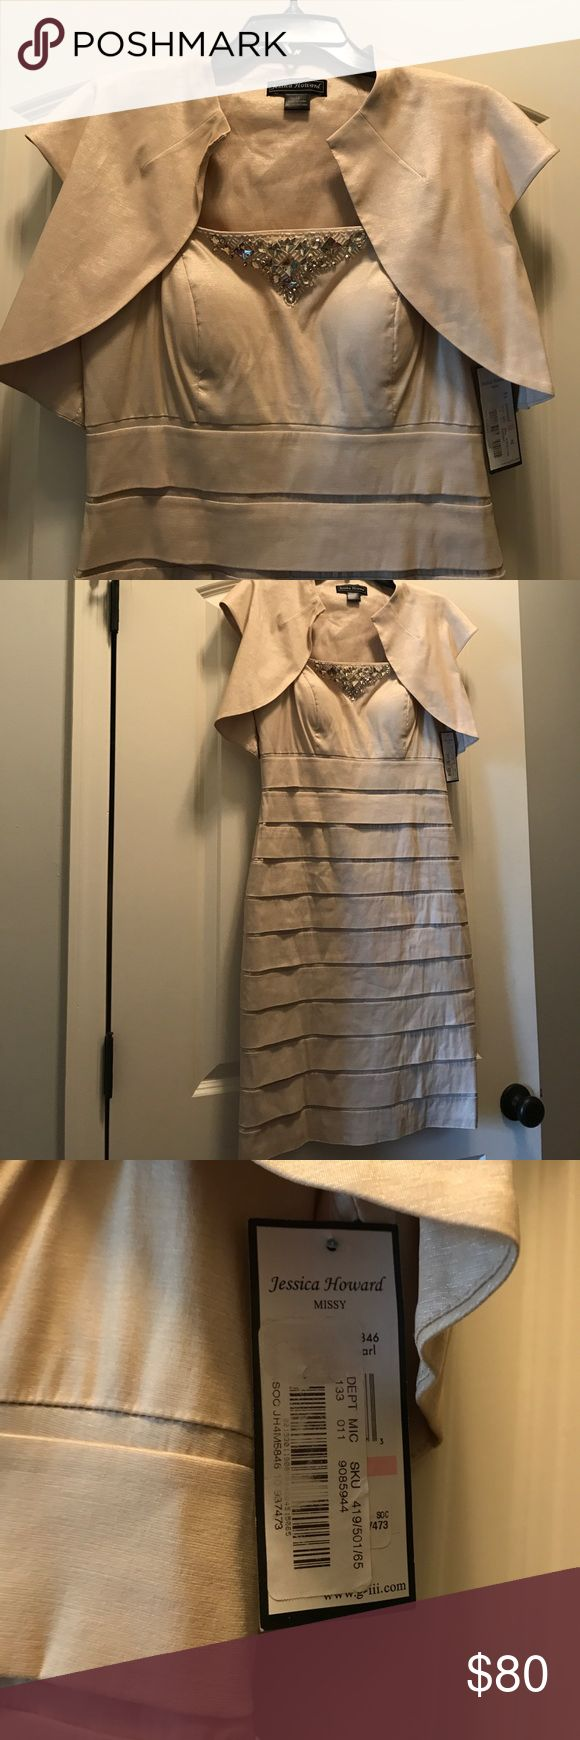 Jessica Howard Missy Dress NWT Jessica Howard champagne colored dress. Can be worn without the shawl. Looks great on! Would be perfect for cocktail dinner or wedding.💃🏻 Jessica Howard Dresses Wedding